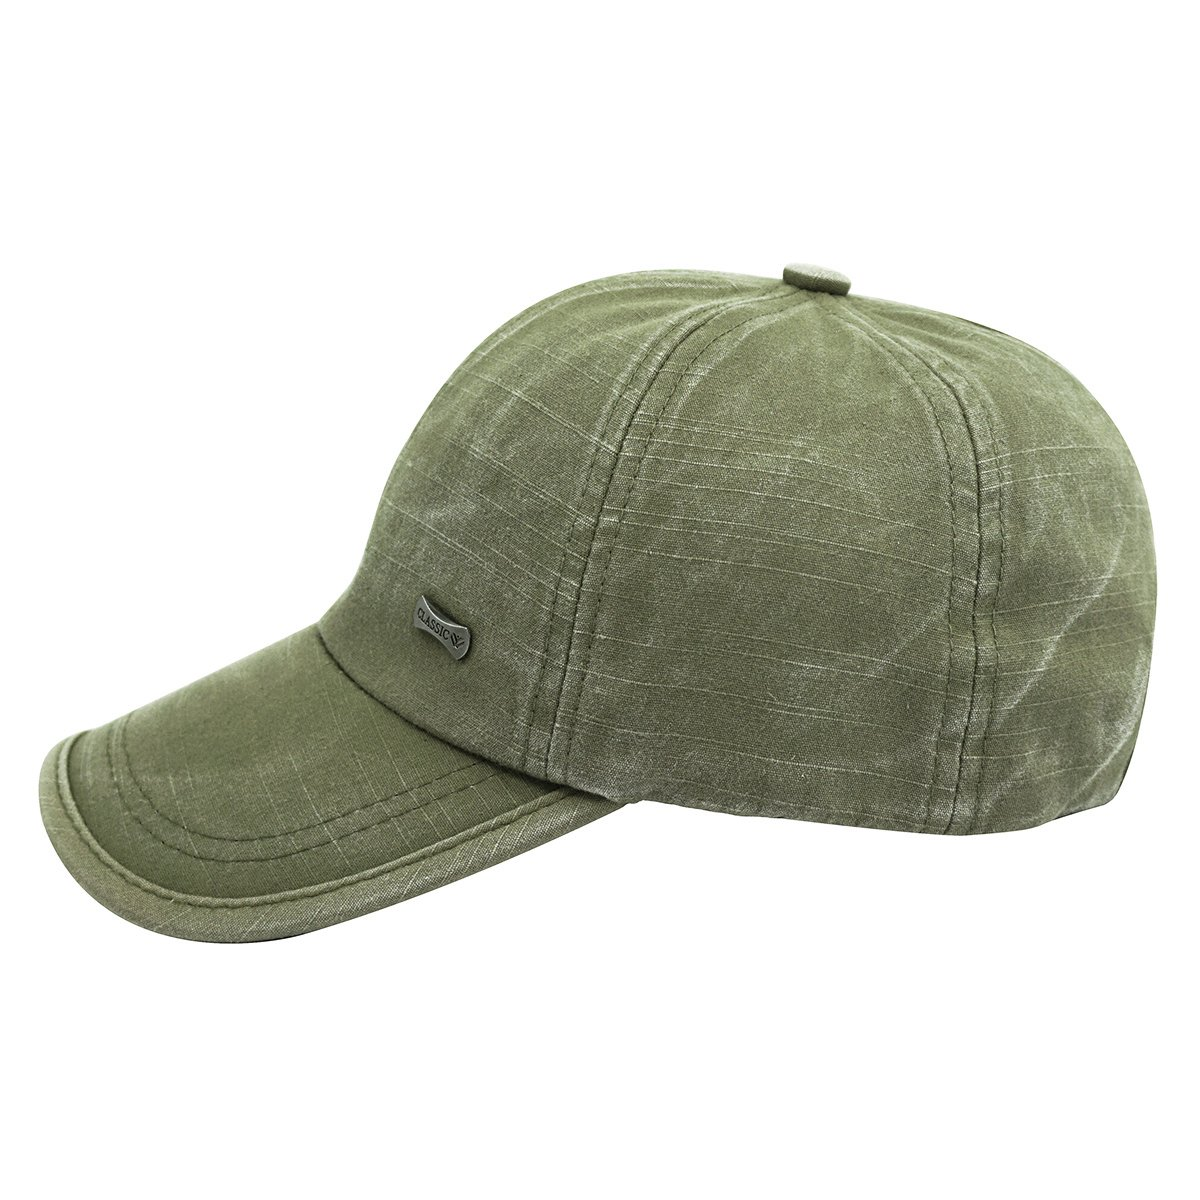 fb96a0aa8e1 Glamorstar Trendy Baseball Caps Adjustable Distressed Washed Cotton Ball  Hat Army Green at Amazon Women s Clothing store